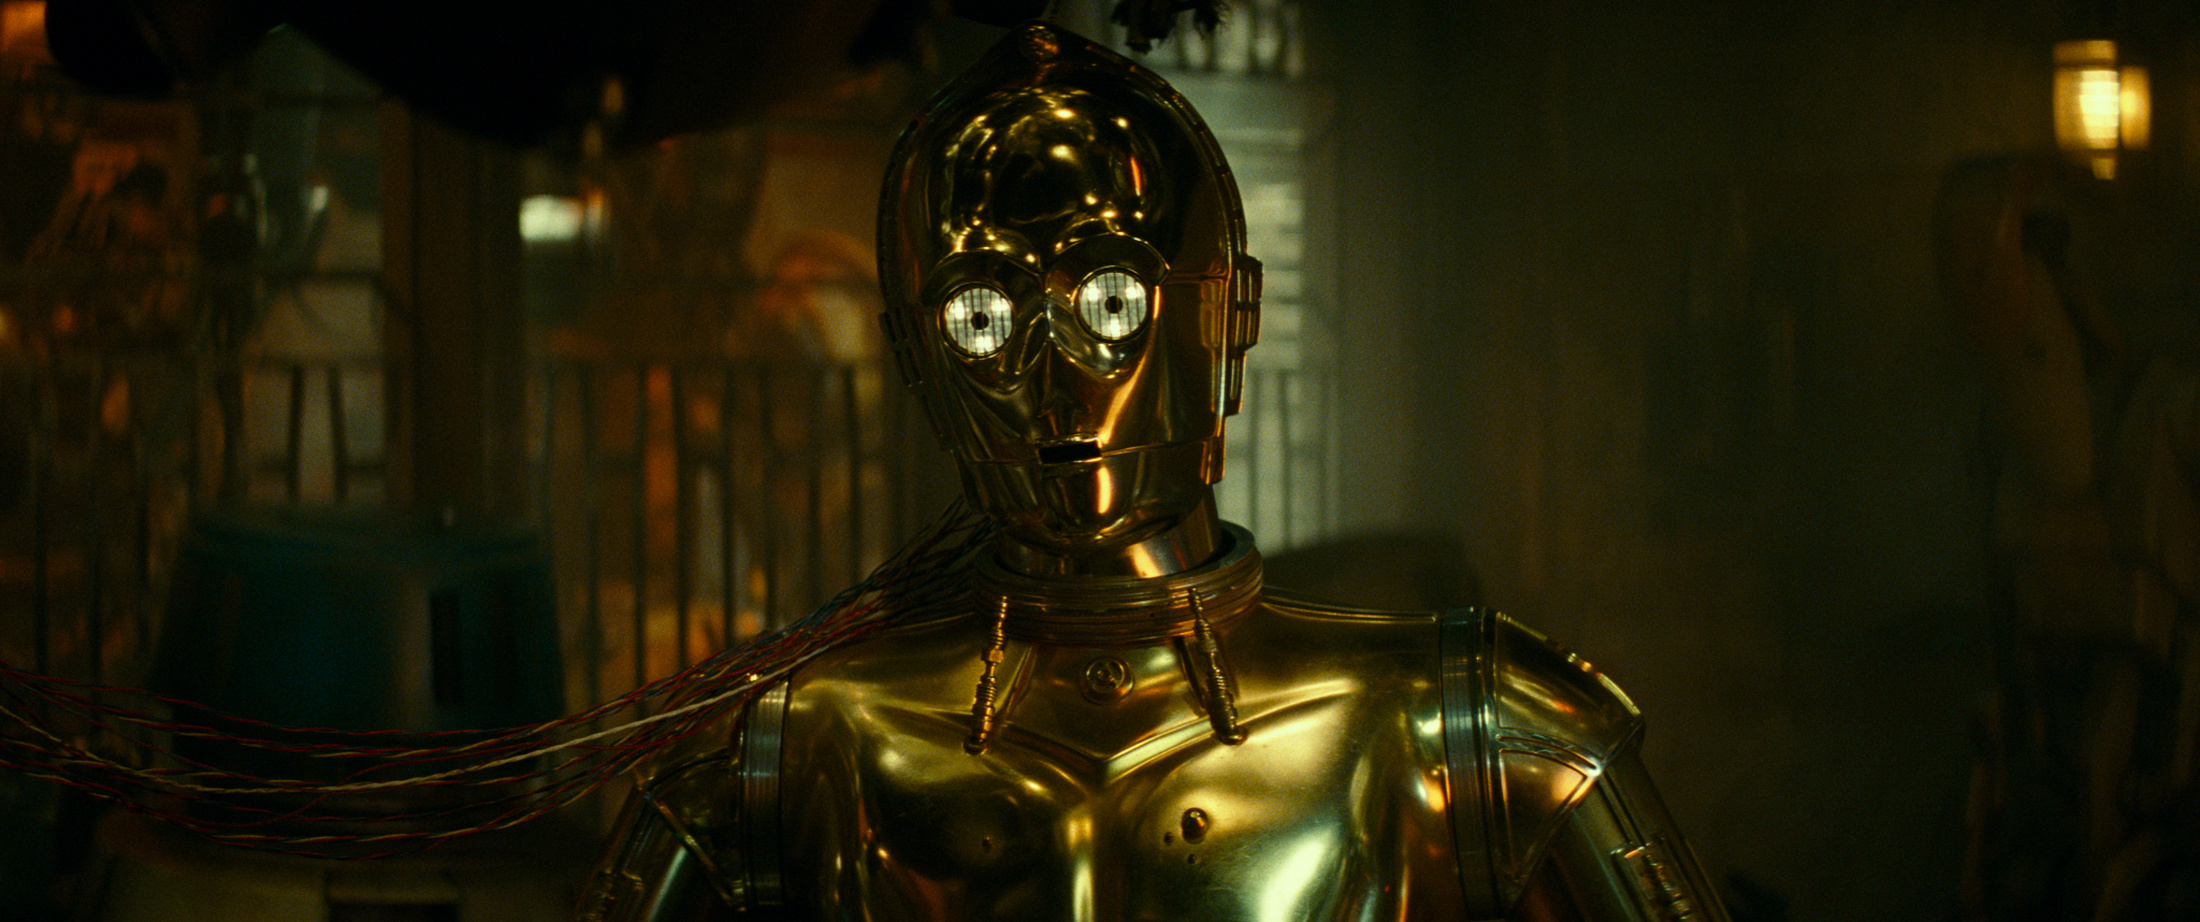 C-3PO in Star Wars: The Rise of Skywalker